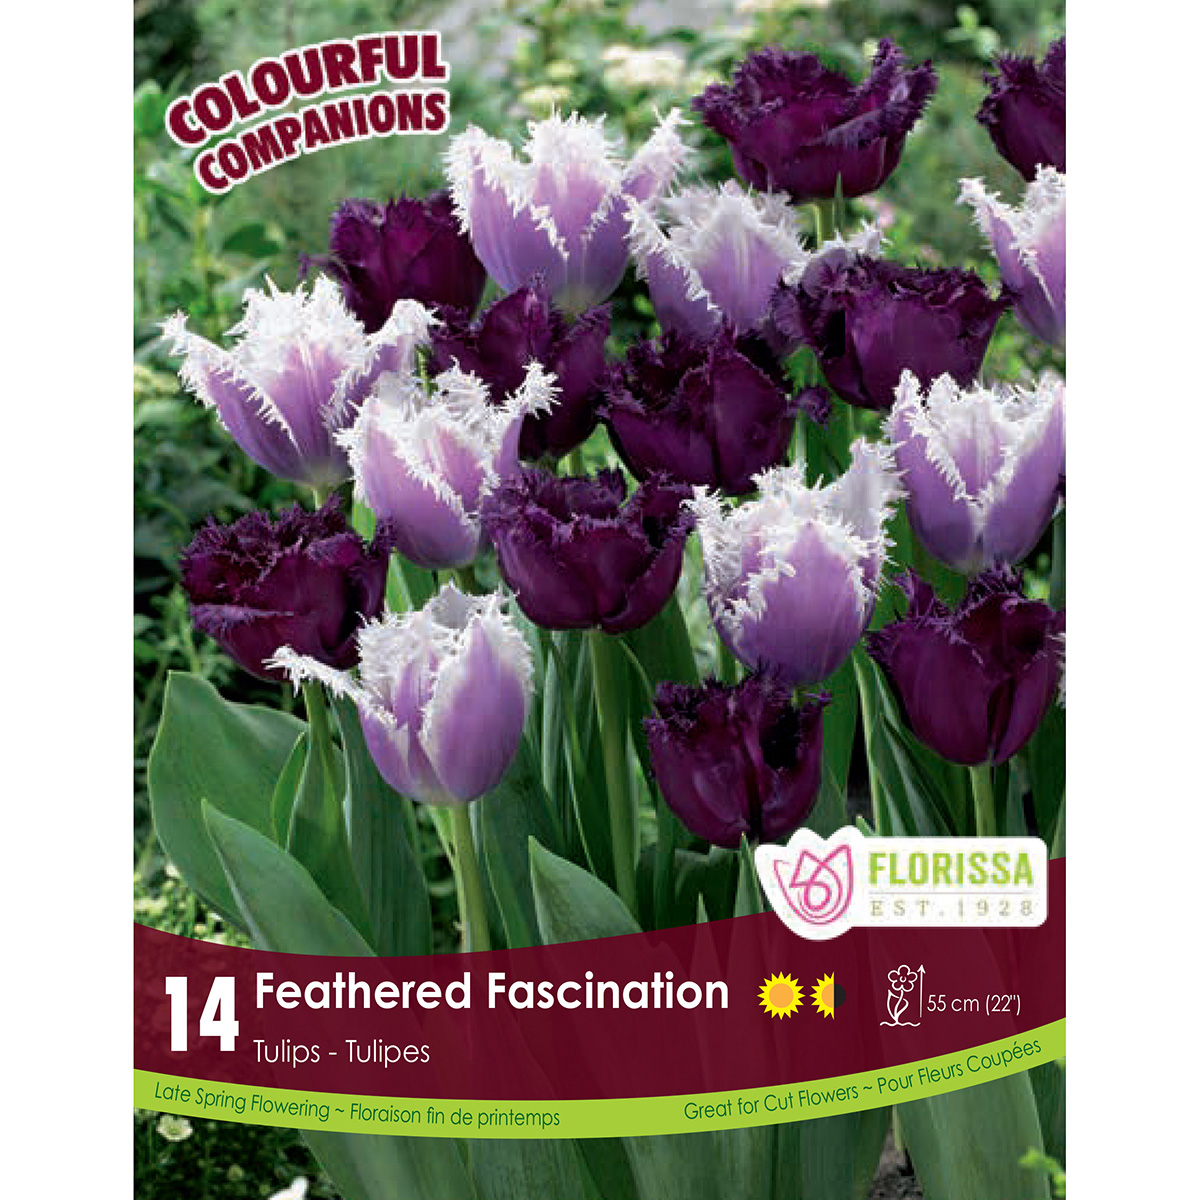 Colourful Companions Tulipa 'Feathered Fascination' Bulbs